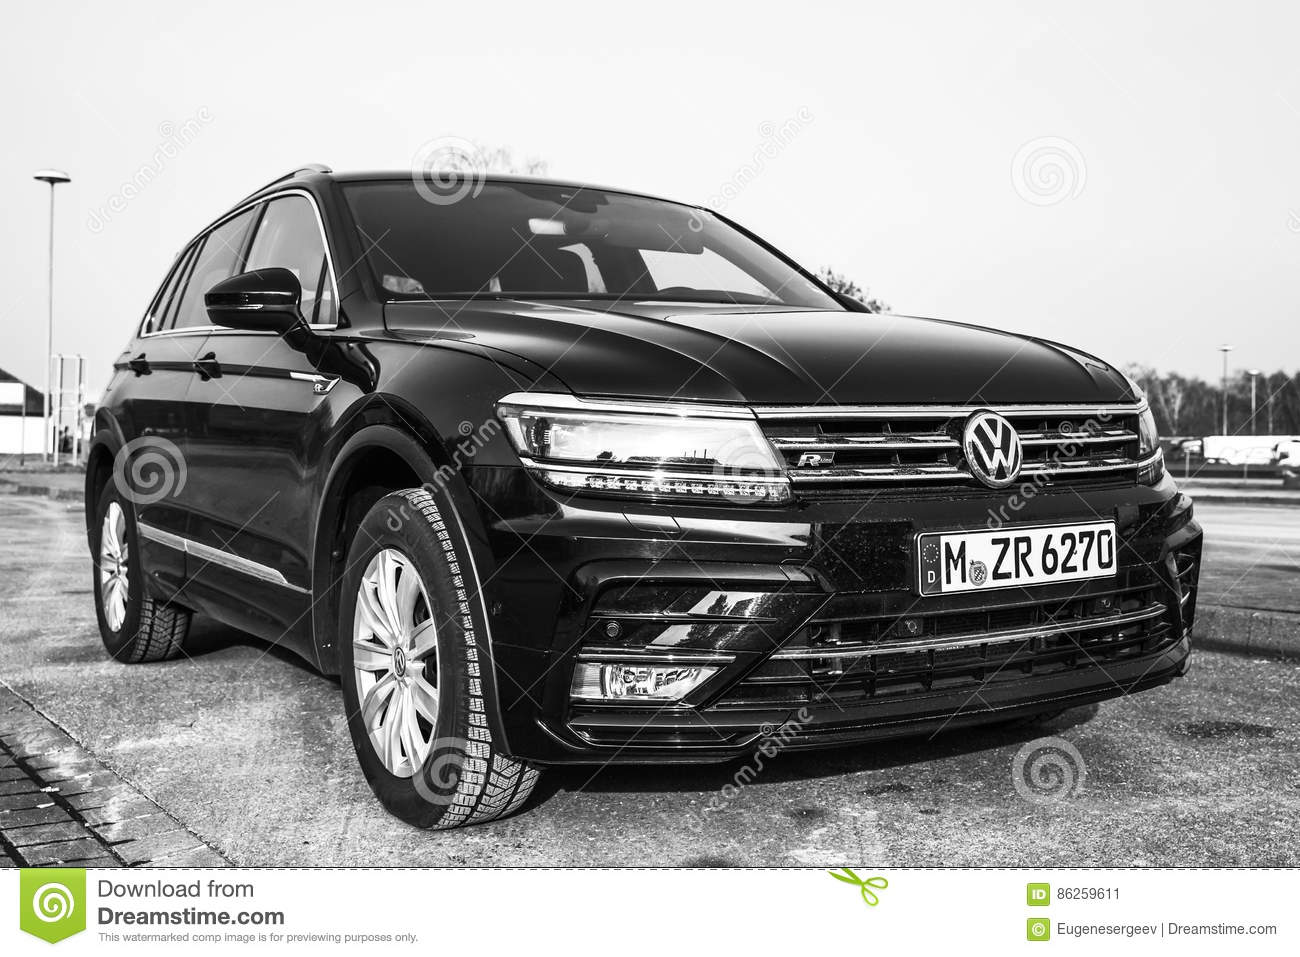 All Types tiguan length : Volkswagen Tiguan R-Line Model 2017 Front Editorial Photography ...